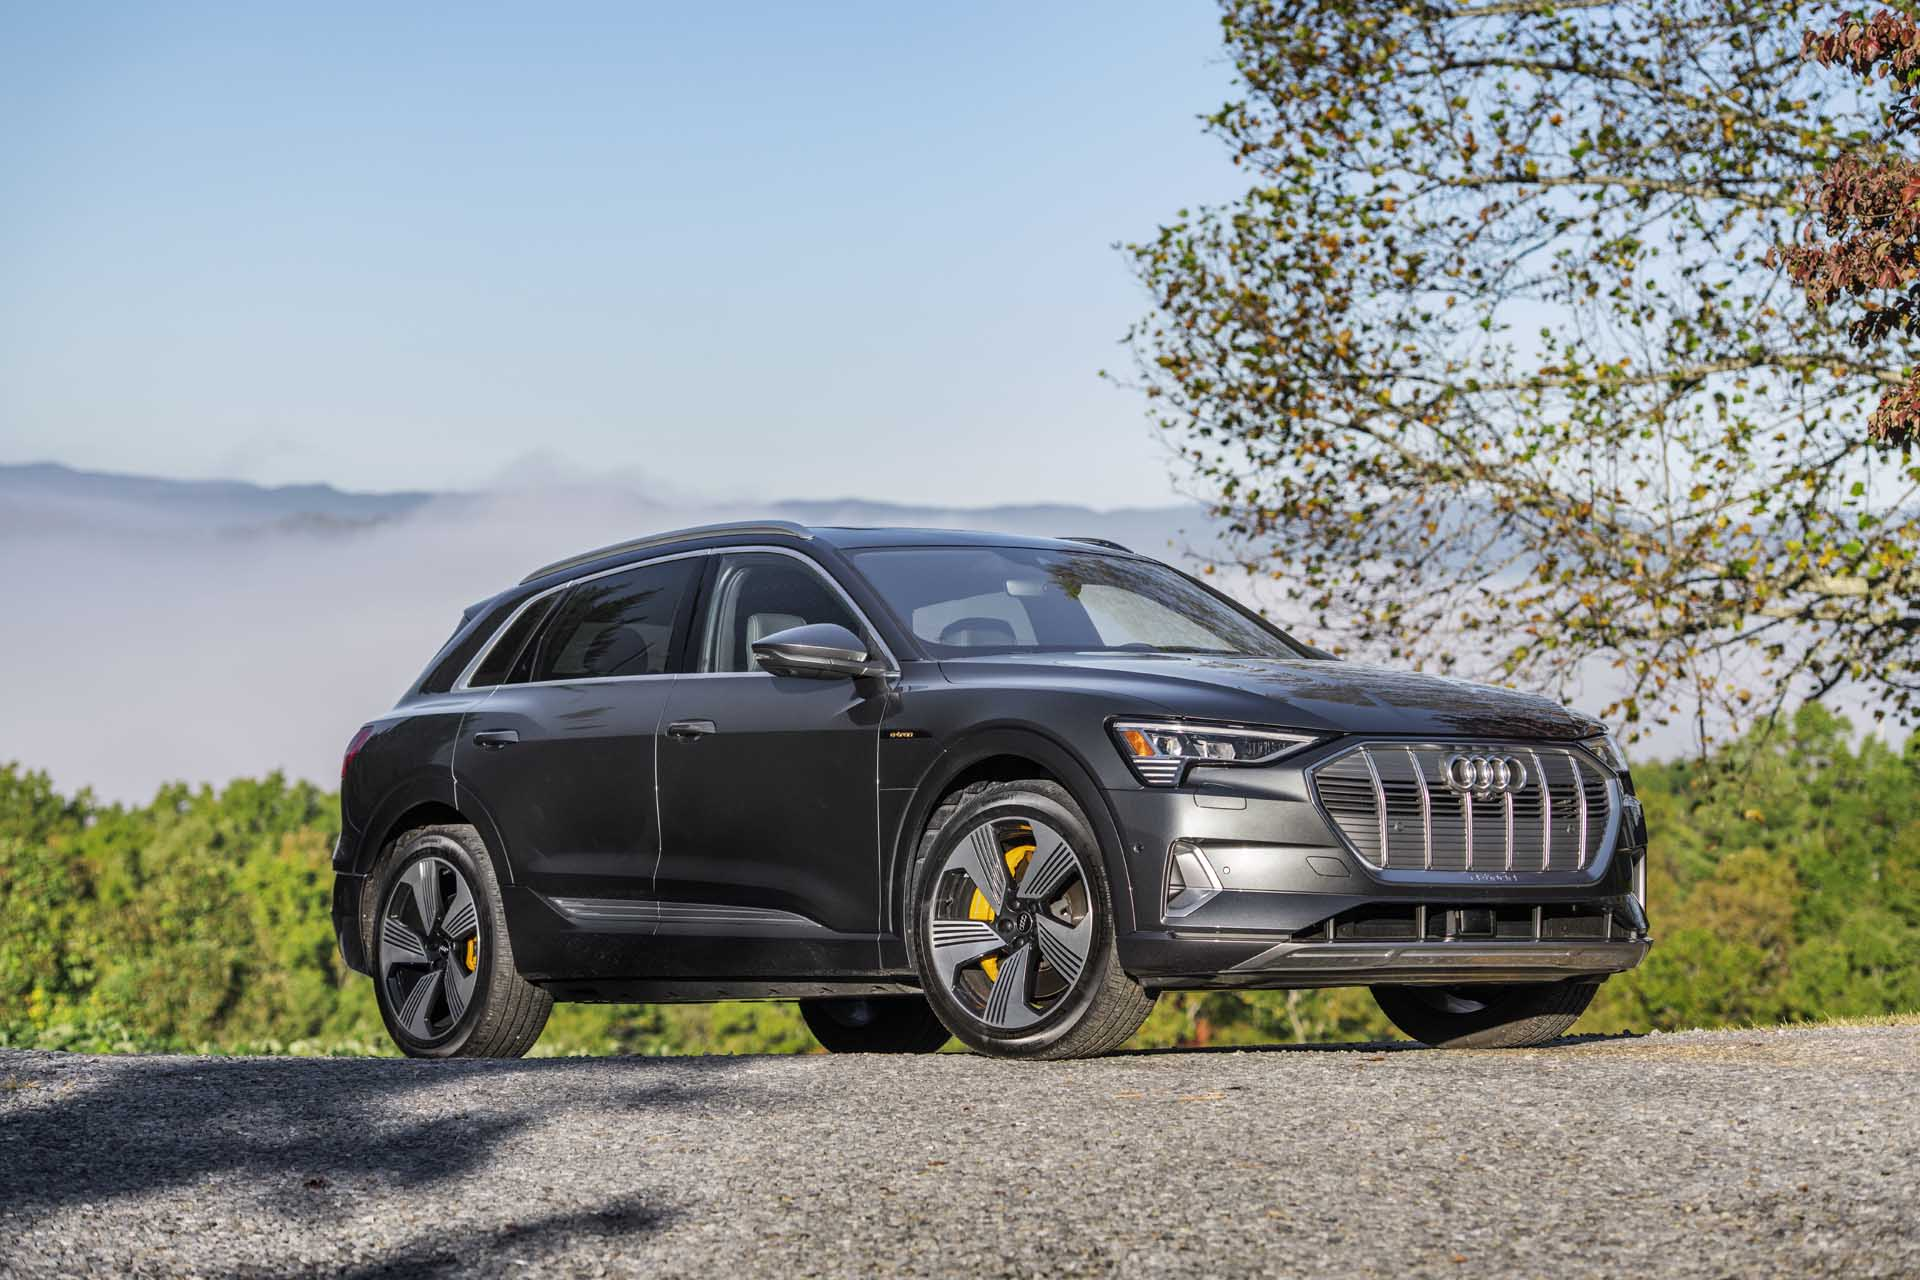 2019 Audi E-Tron eligible for up to a $13,000 discount—if you first go to Costco